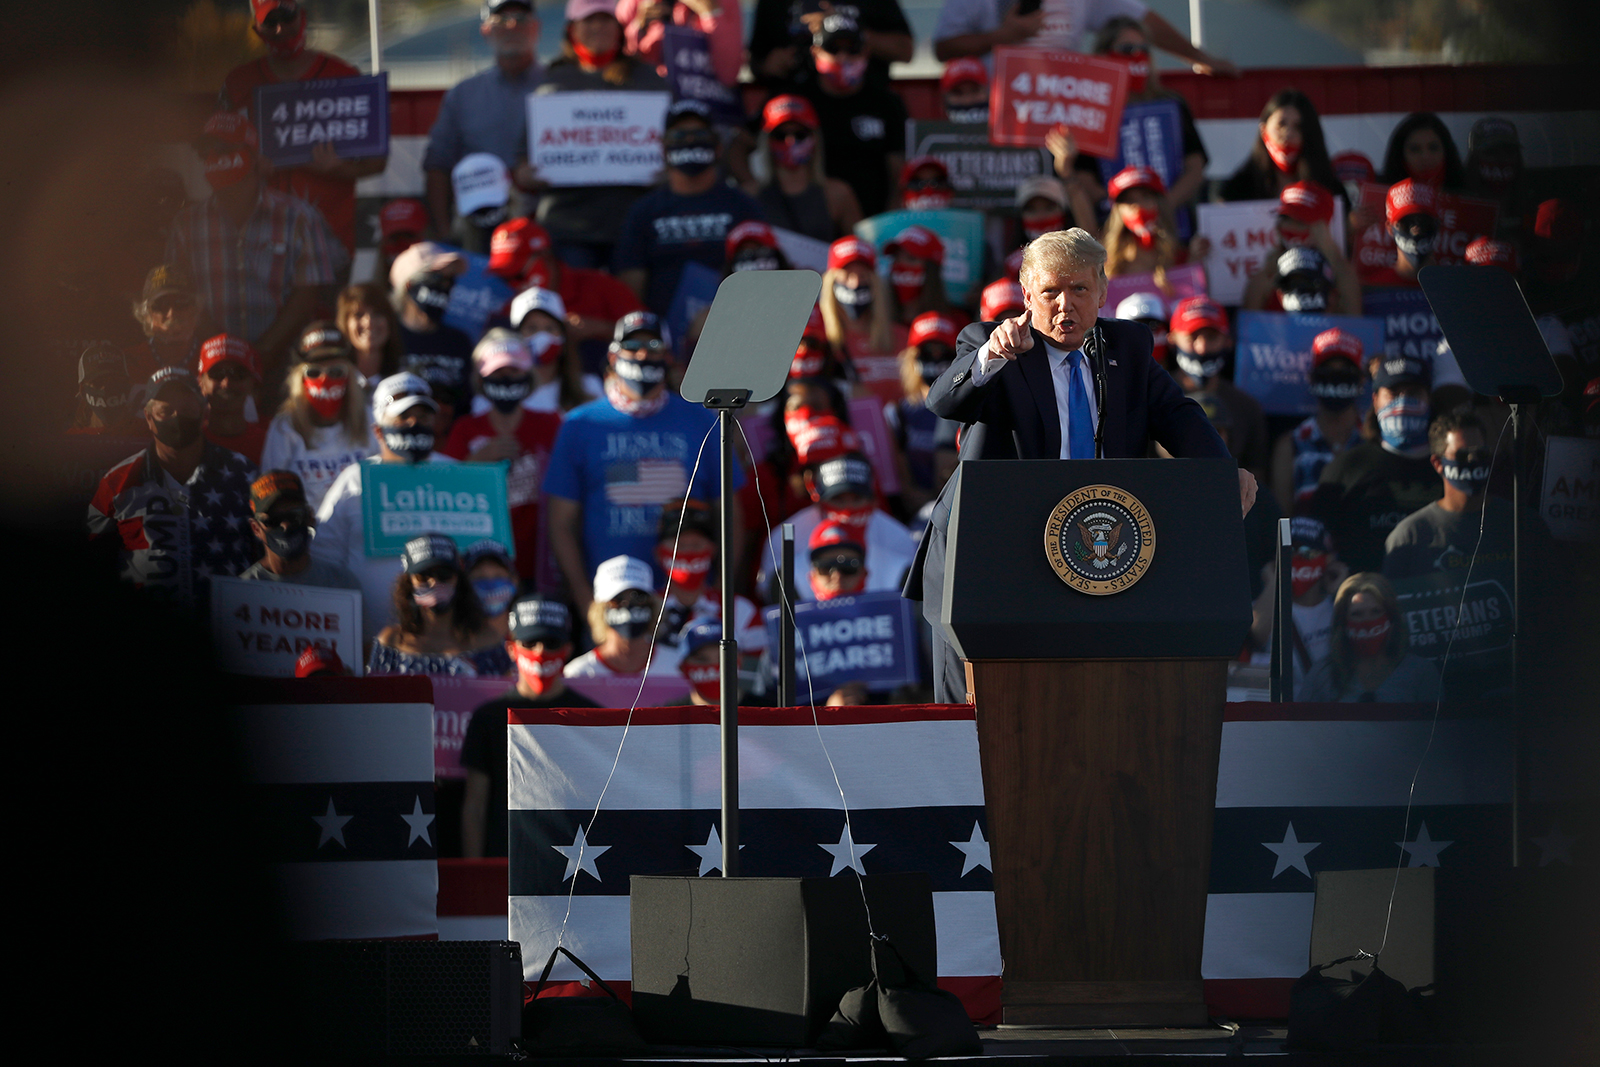 President Donald Trump gestures during a campaign rally in Carson City, Nevada, on October 18.